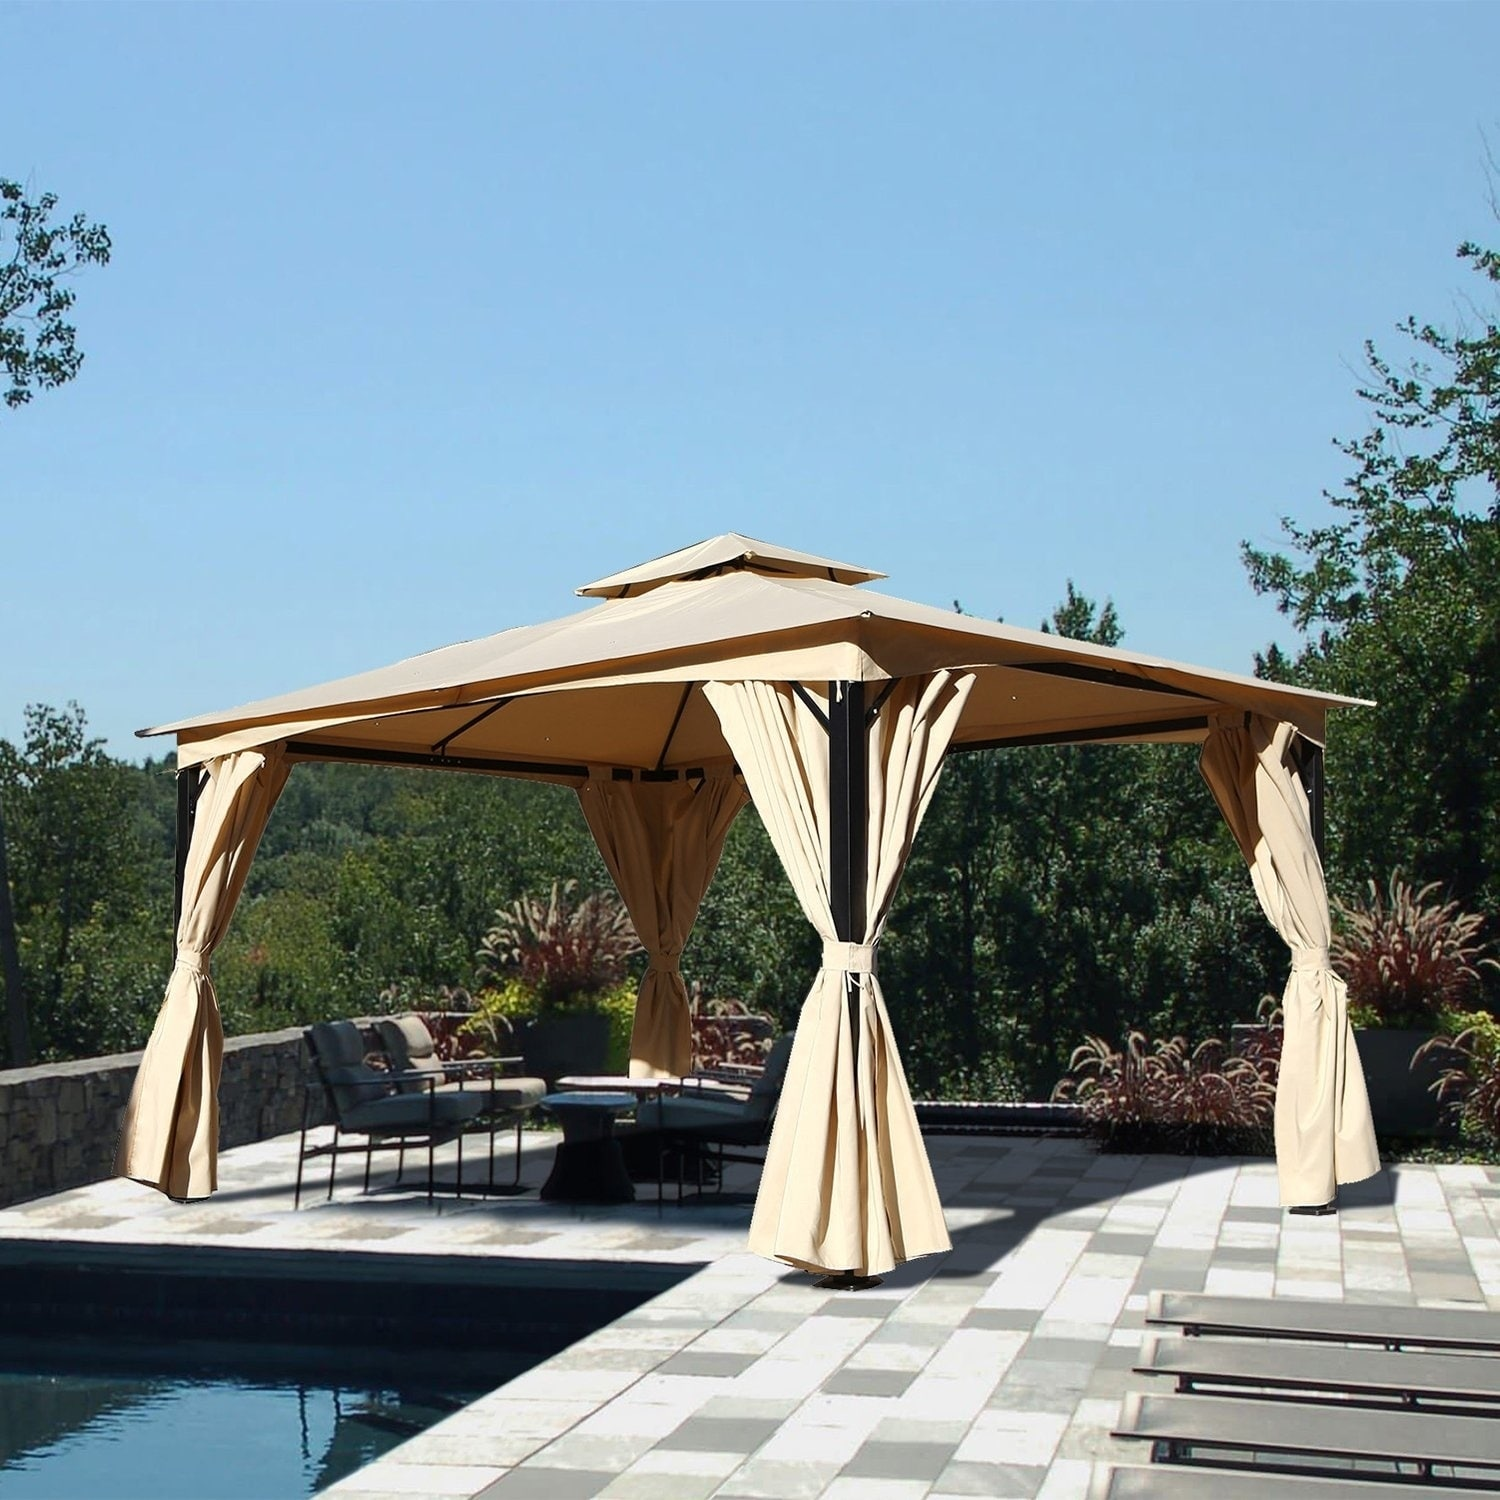 Shop Grand Patio 10x14Ft Double Square Tops Gazebo With Hardtop Canopy    Free Shipping Today   Overstock.com   22545985